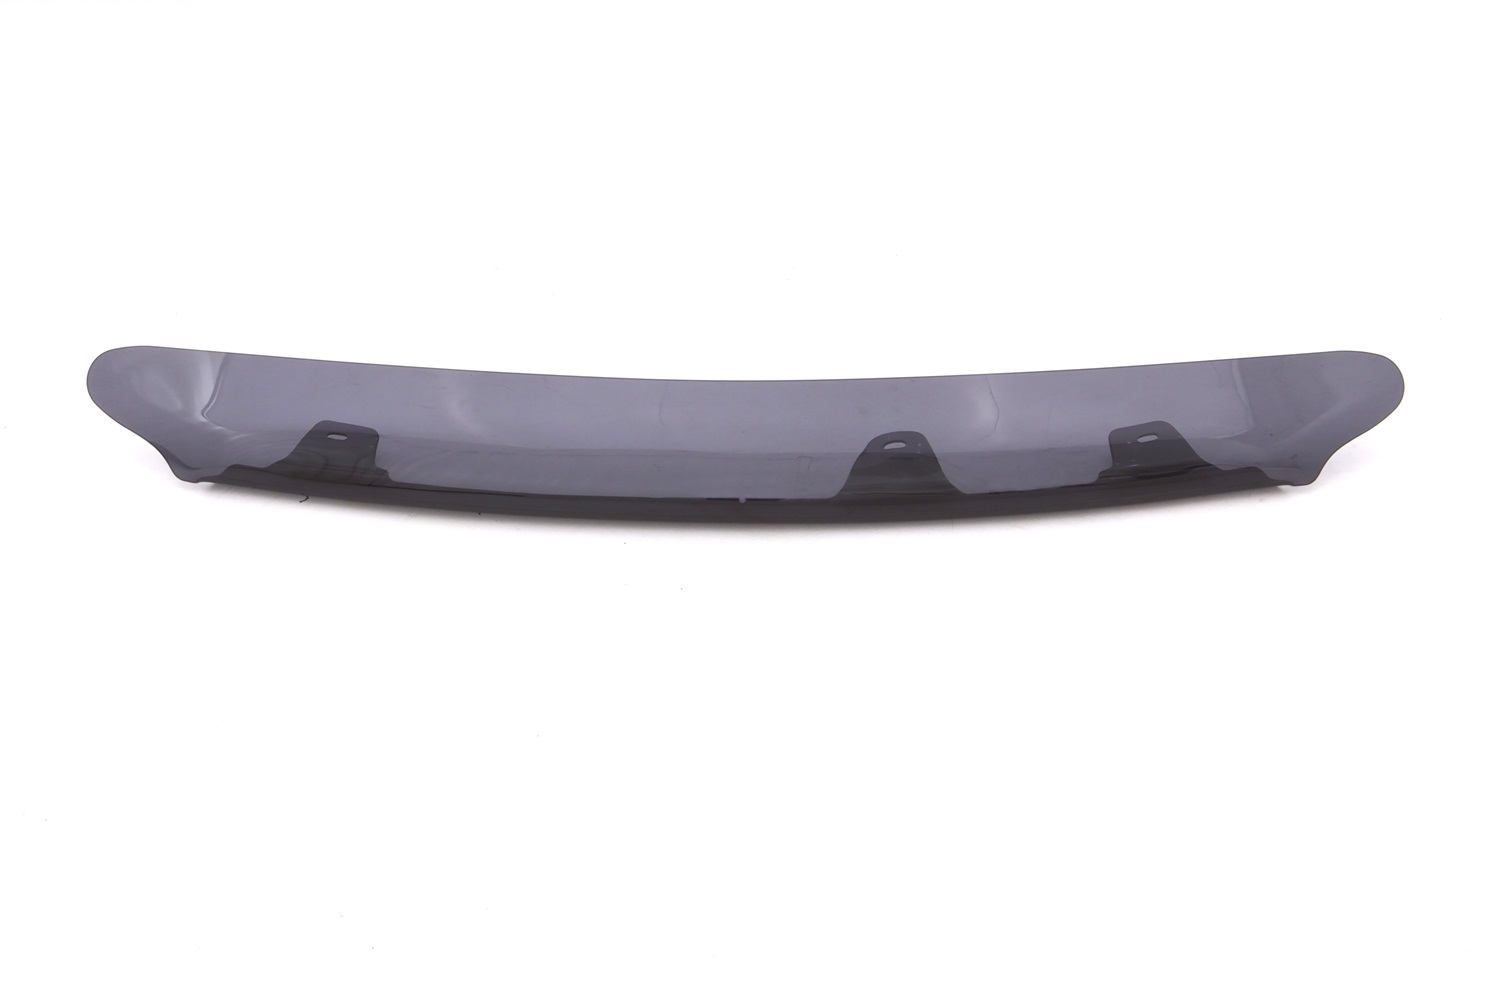 Lund 18724 Interceptor Wrap Bug Shield Fits 12-16 CR-V